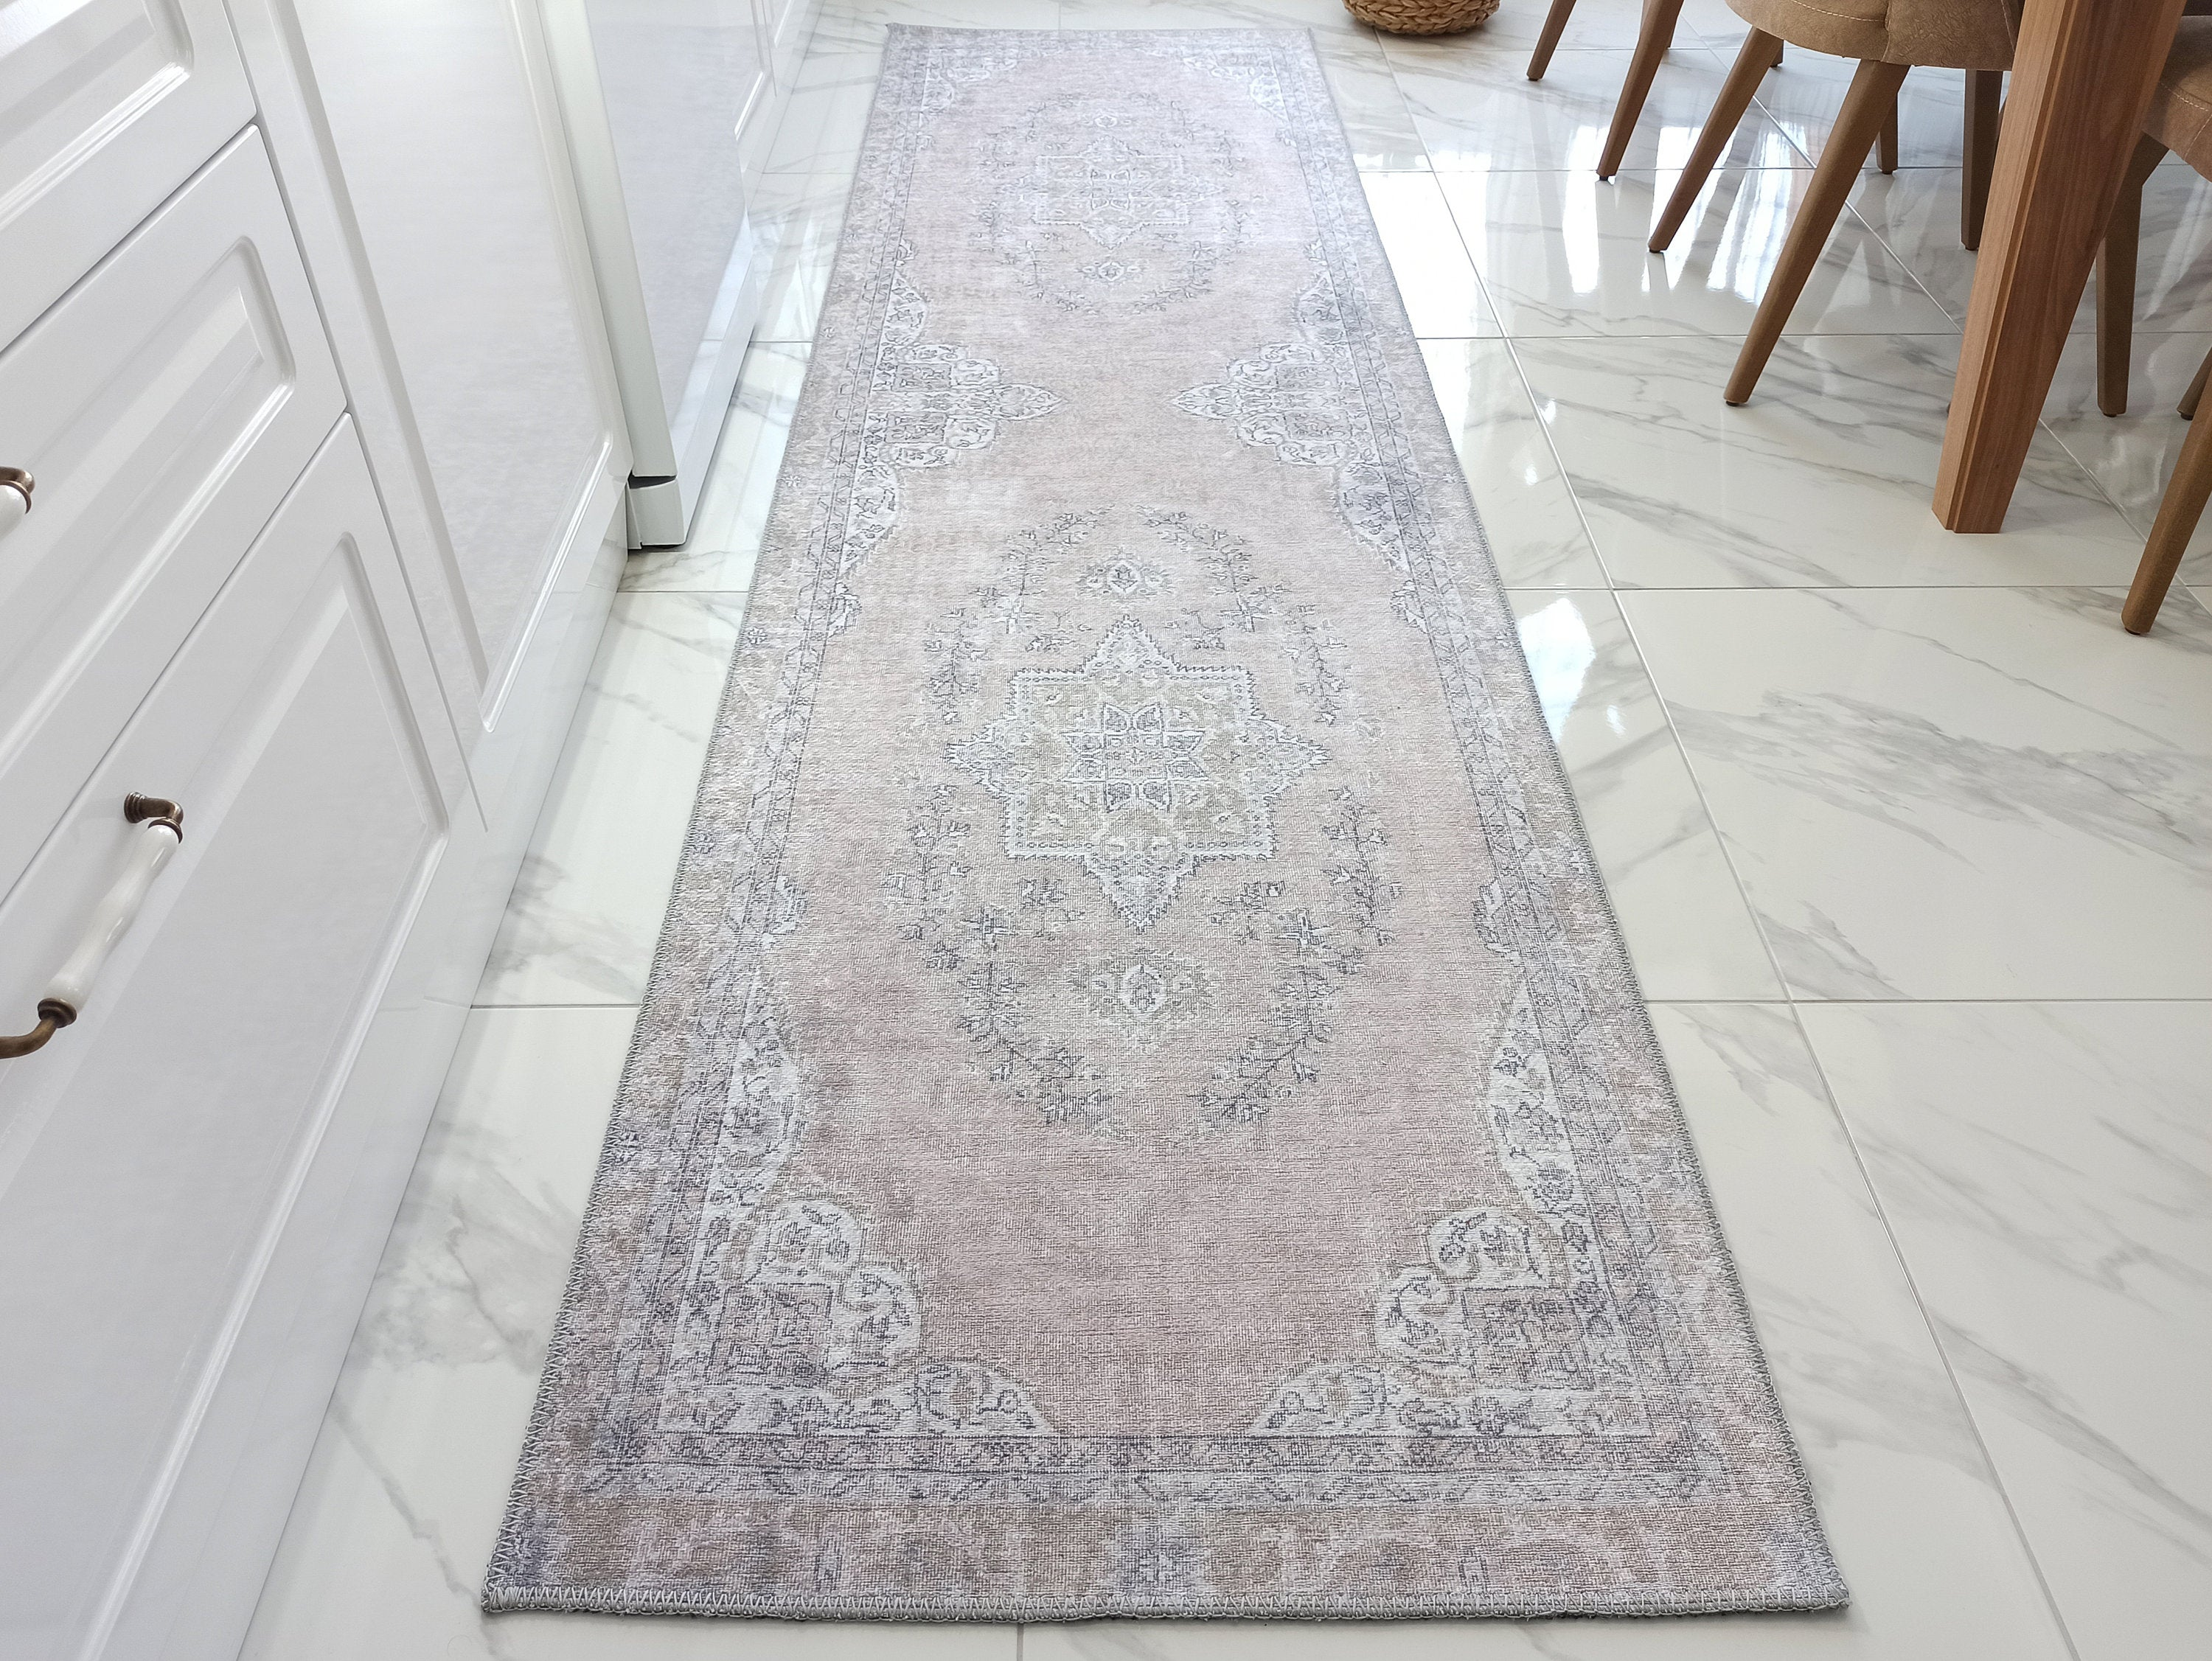 SAFA Runner | Turkish Runner Rug, Neutral Faded Pink, Oriental Traditional Bohemian, Vintage look, Minimalist, Shabby Hallway decor runners